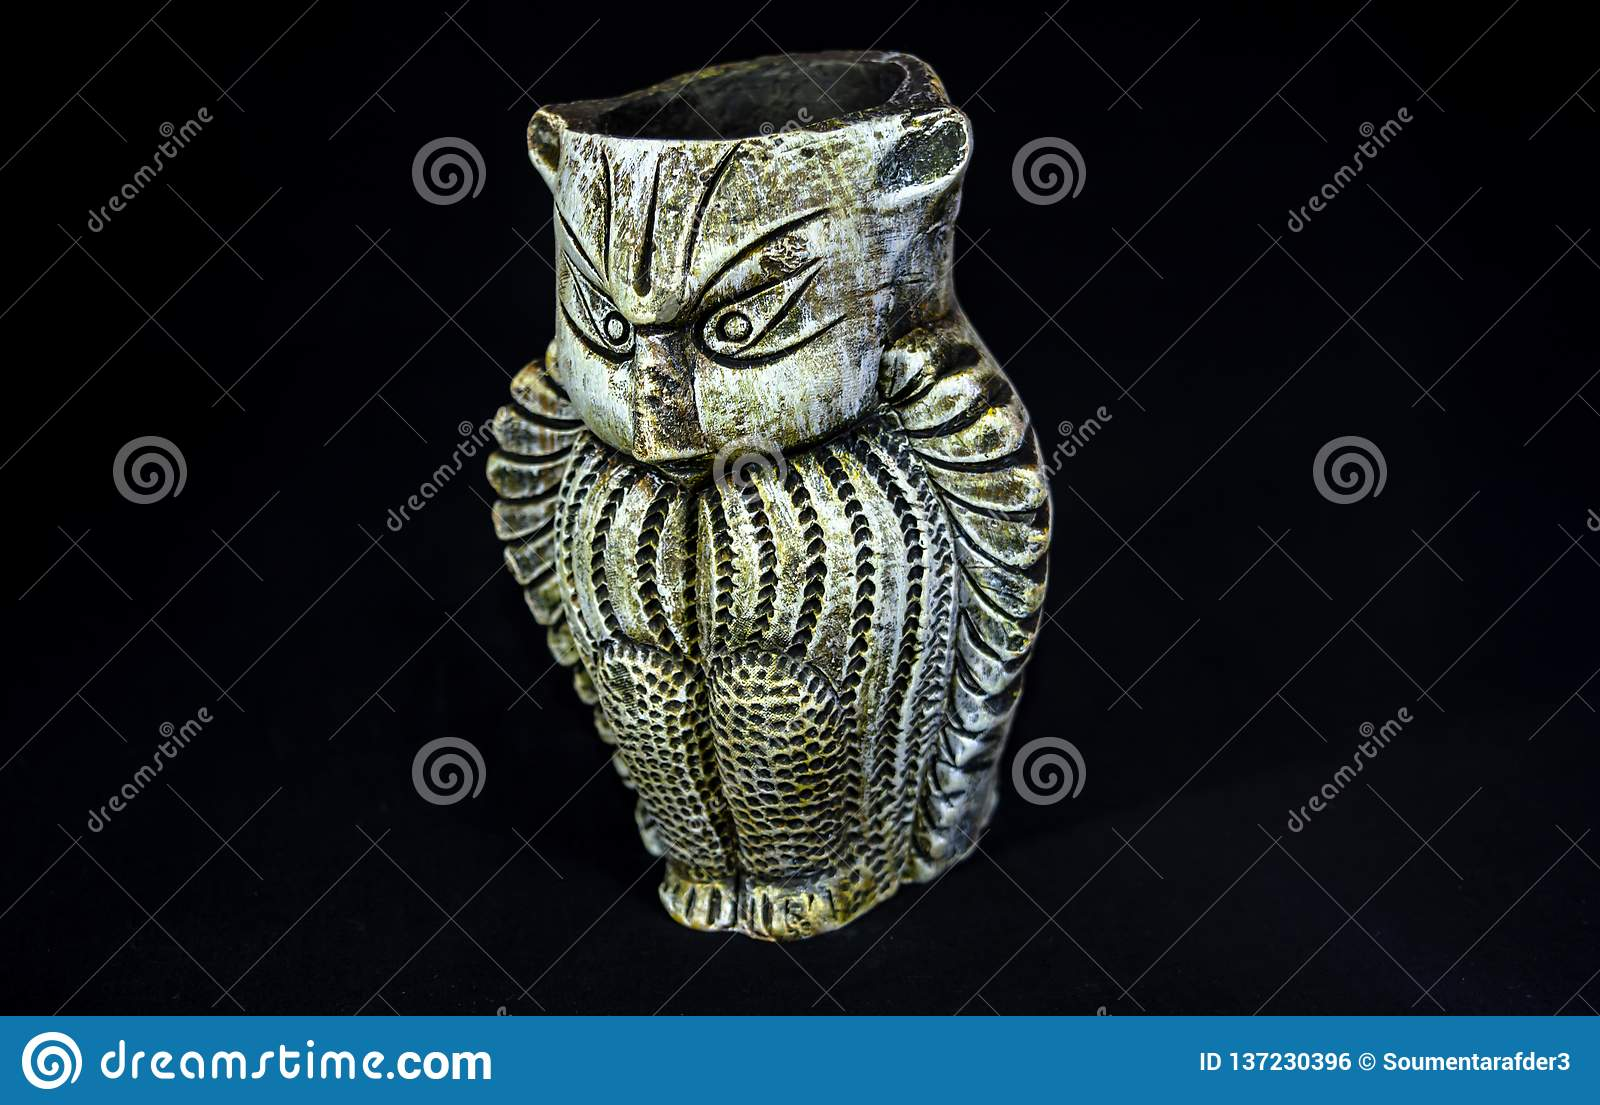 Side Angle View Of Terracotta Owl.Made out of clay with selective focus and isolated black background.